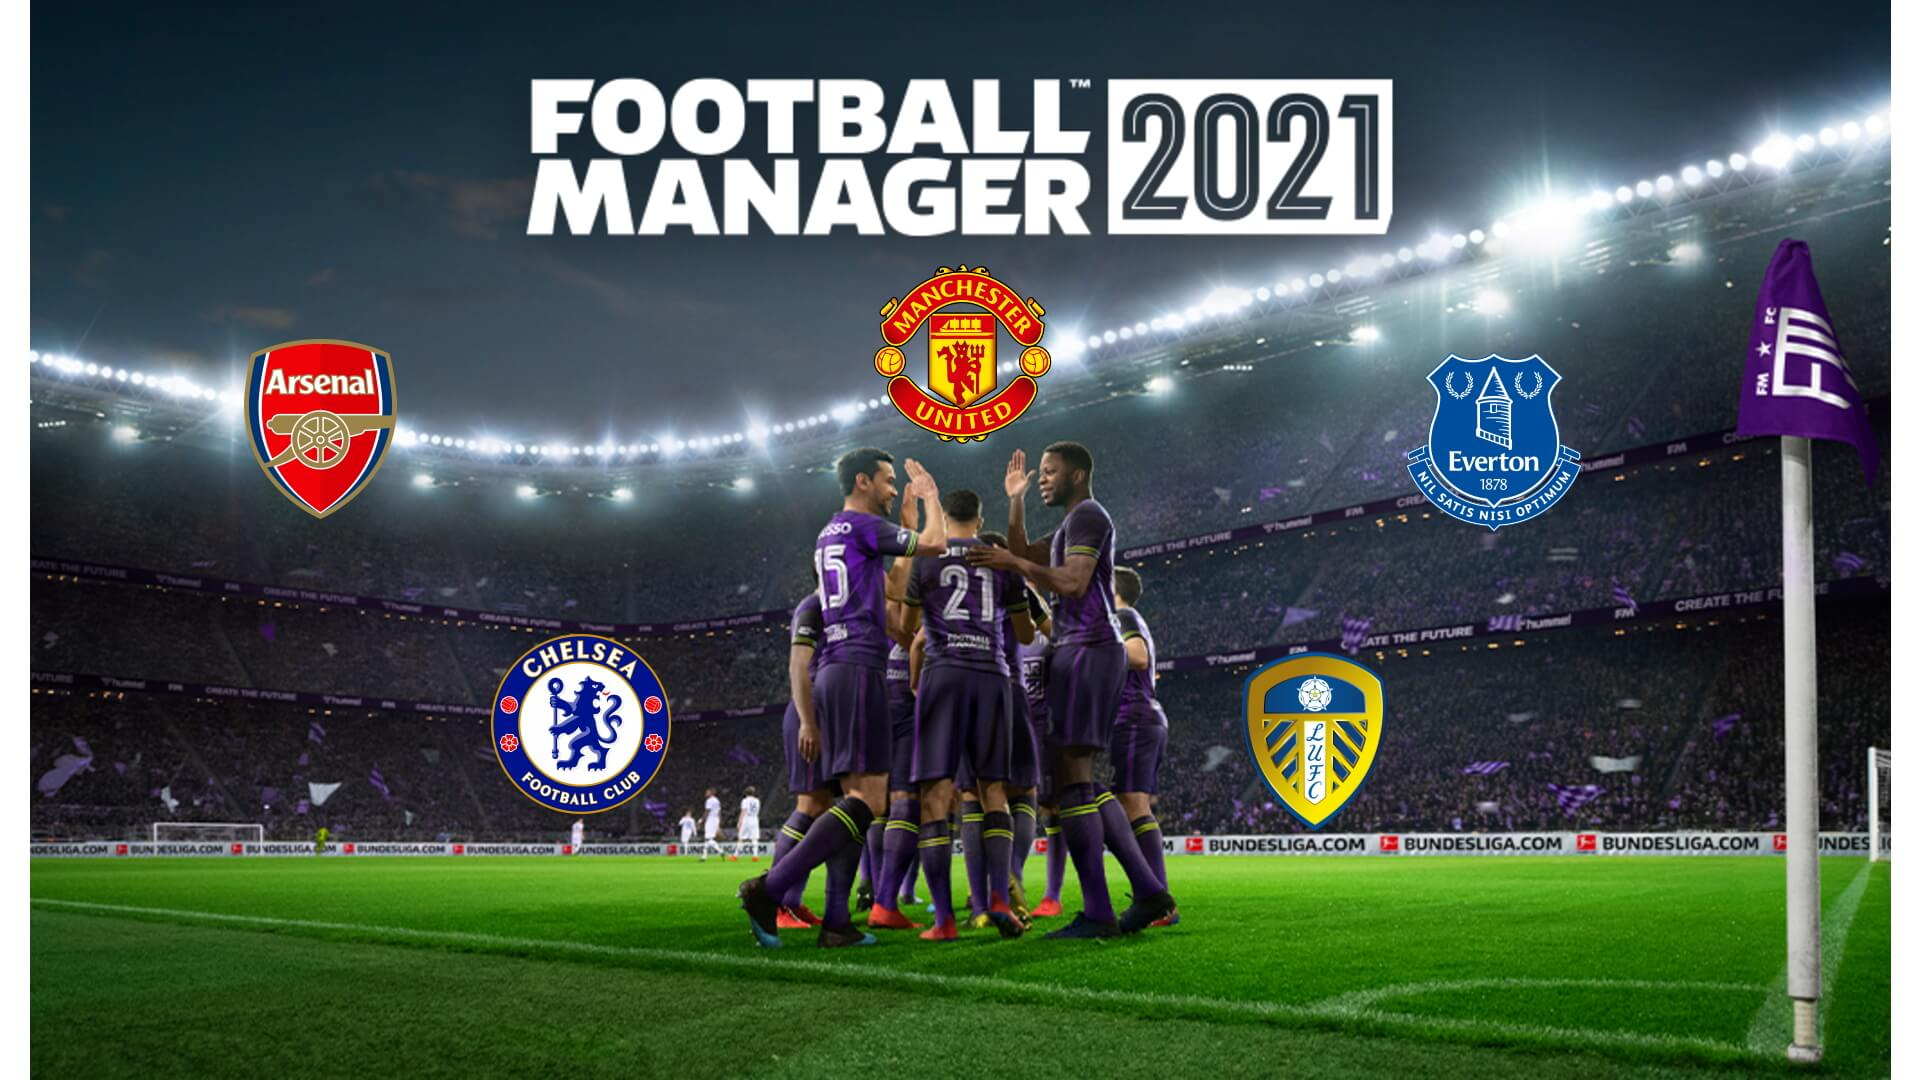 Football Manager 2021 Guide - How to Add Face/Logo Packs